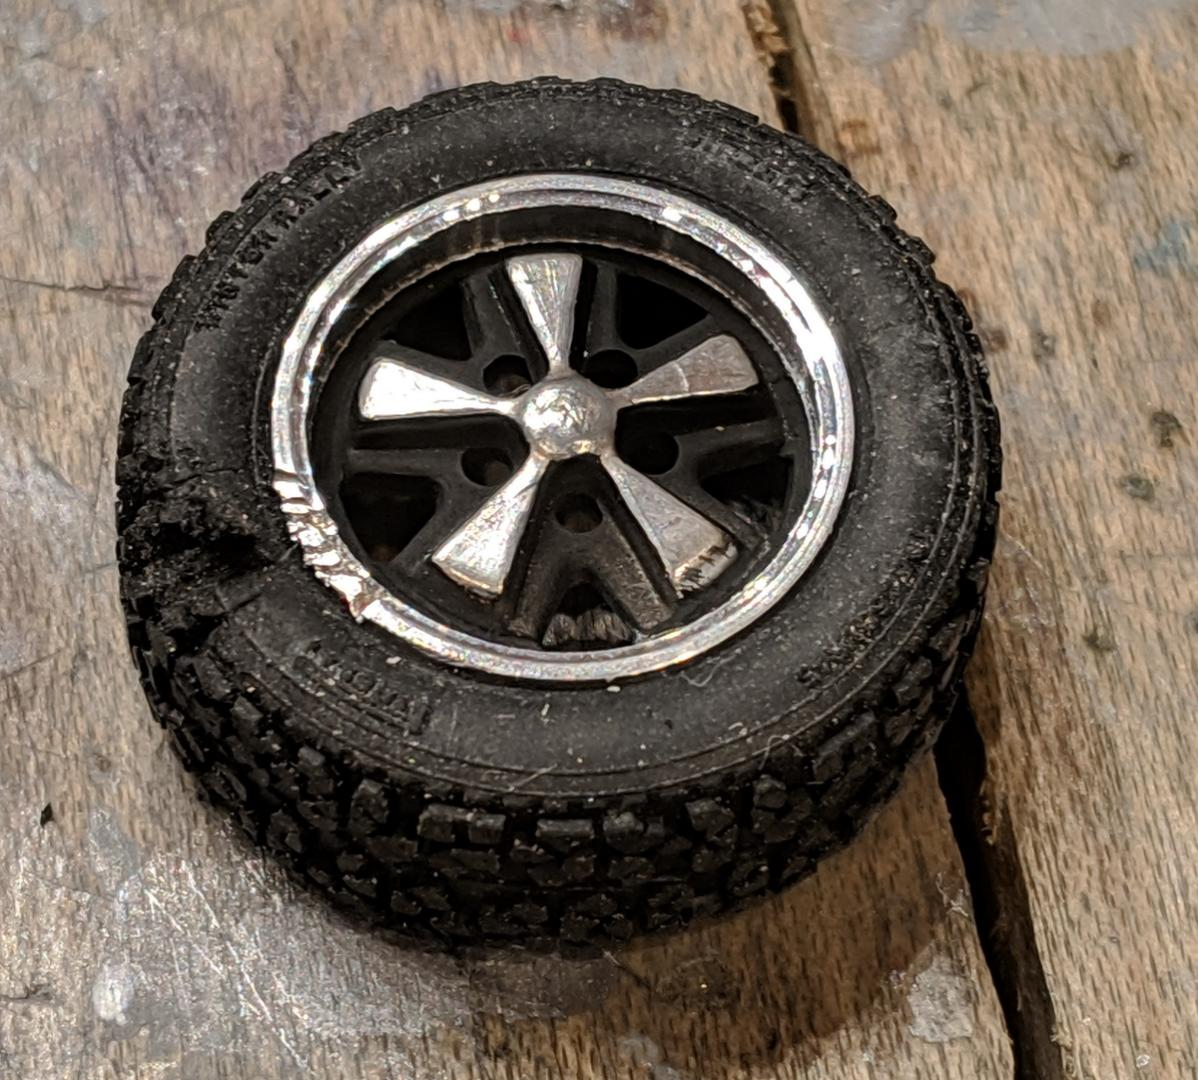 TIRE THAT HIT THE ROCK.jpg